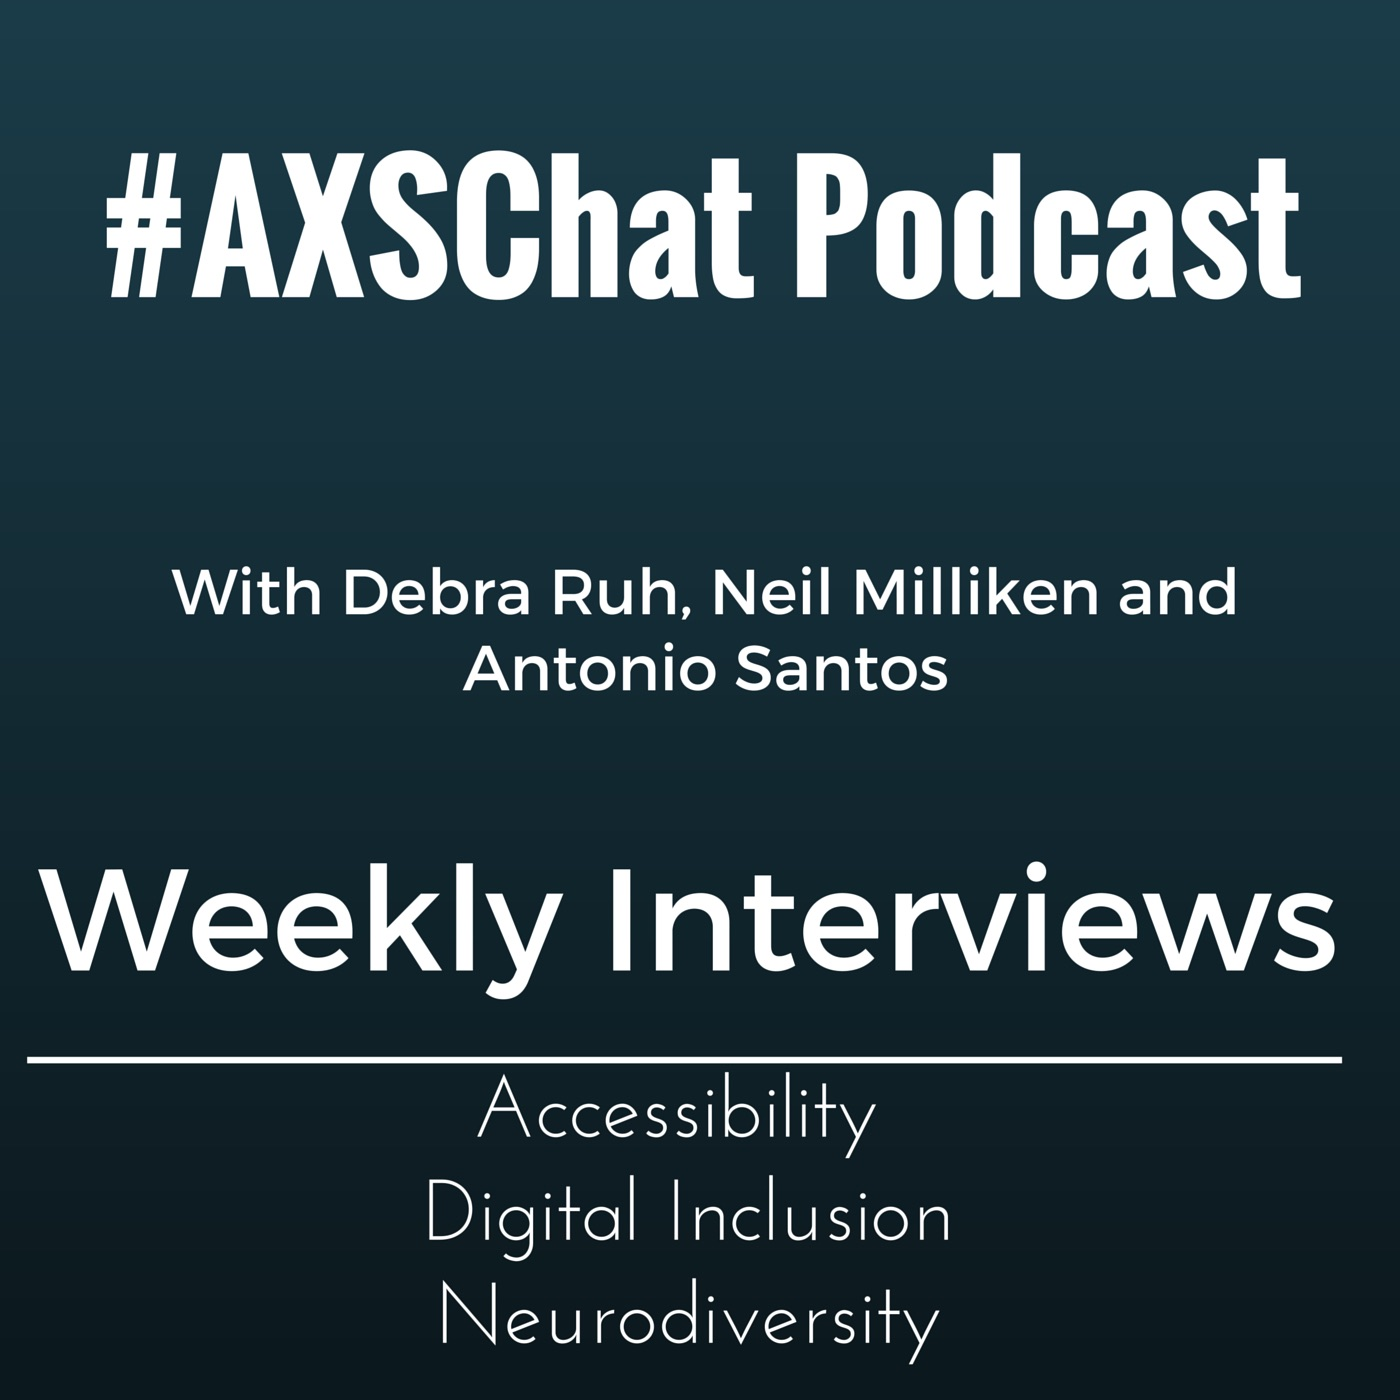 AXSChat Podcast